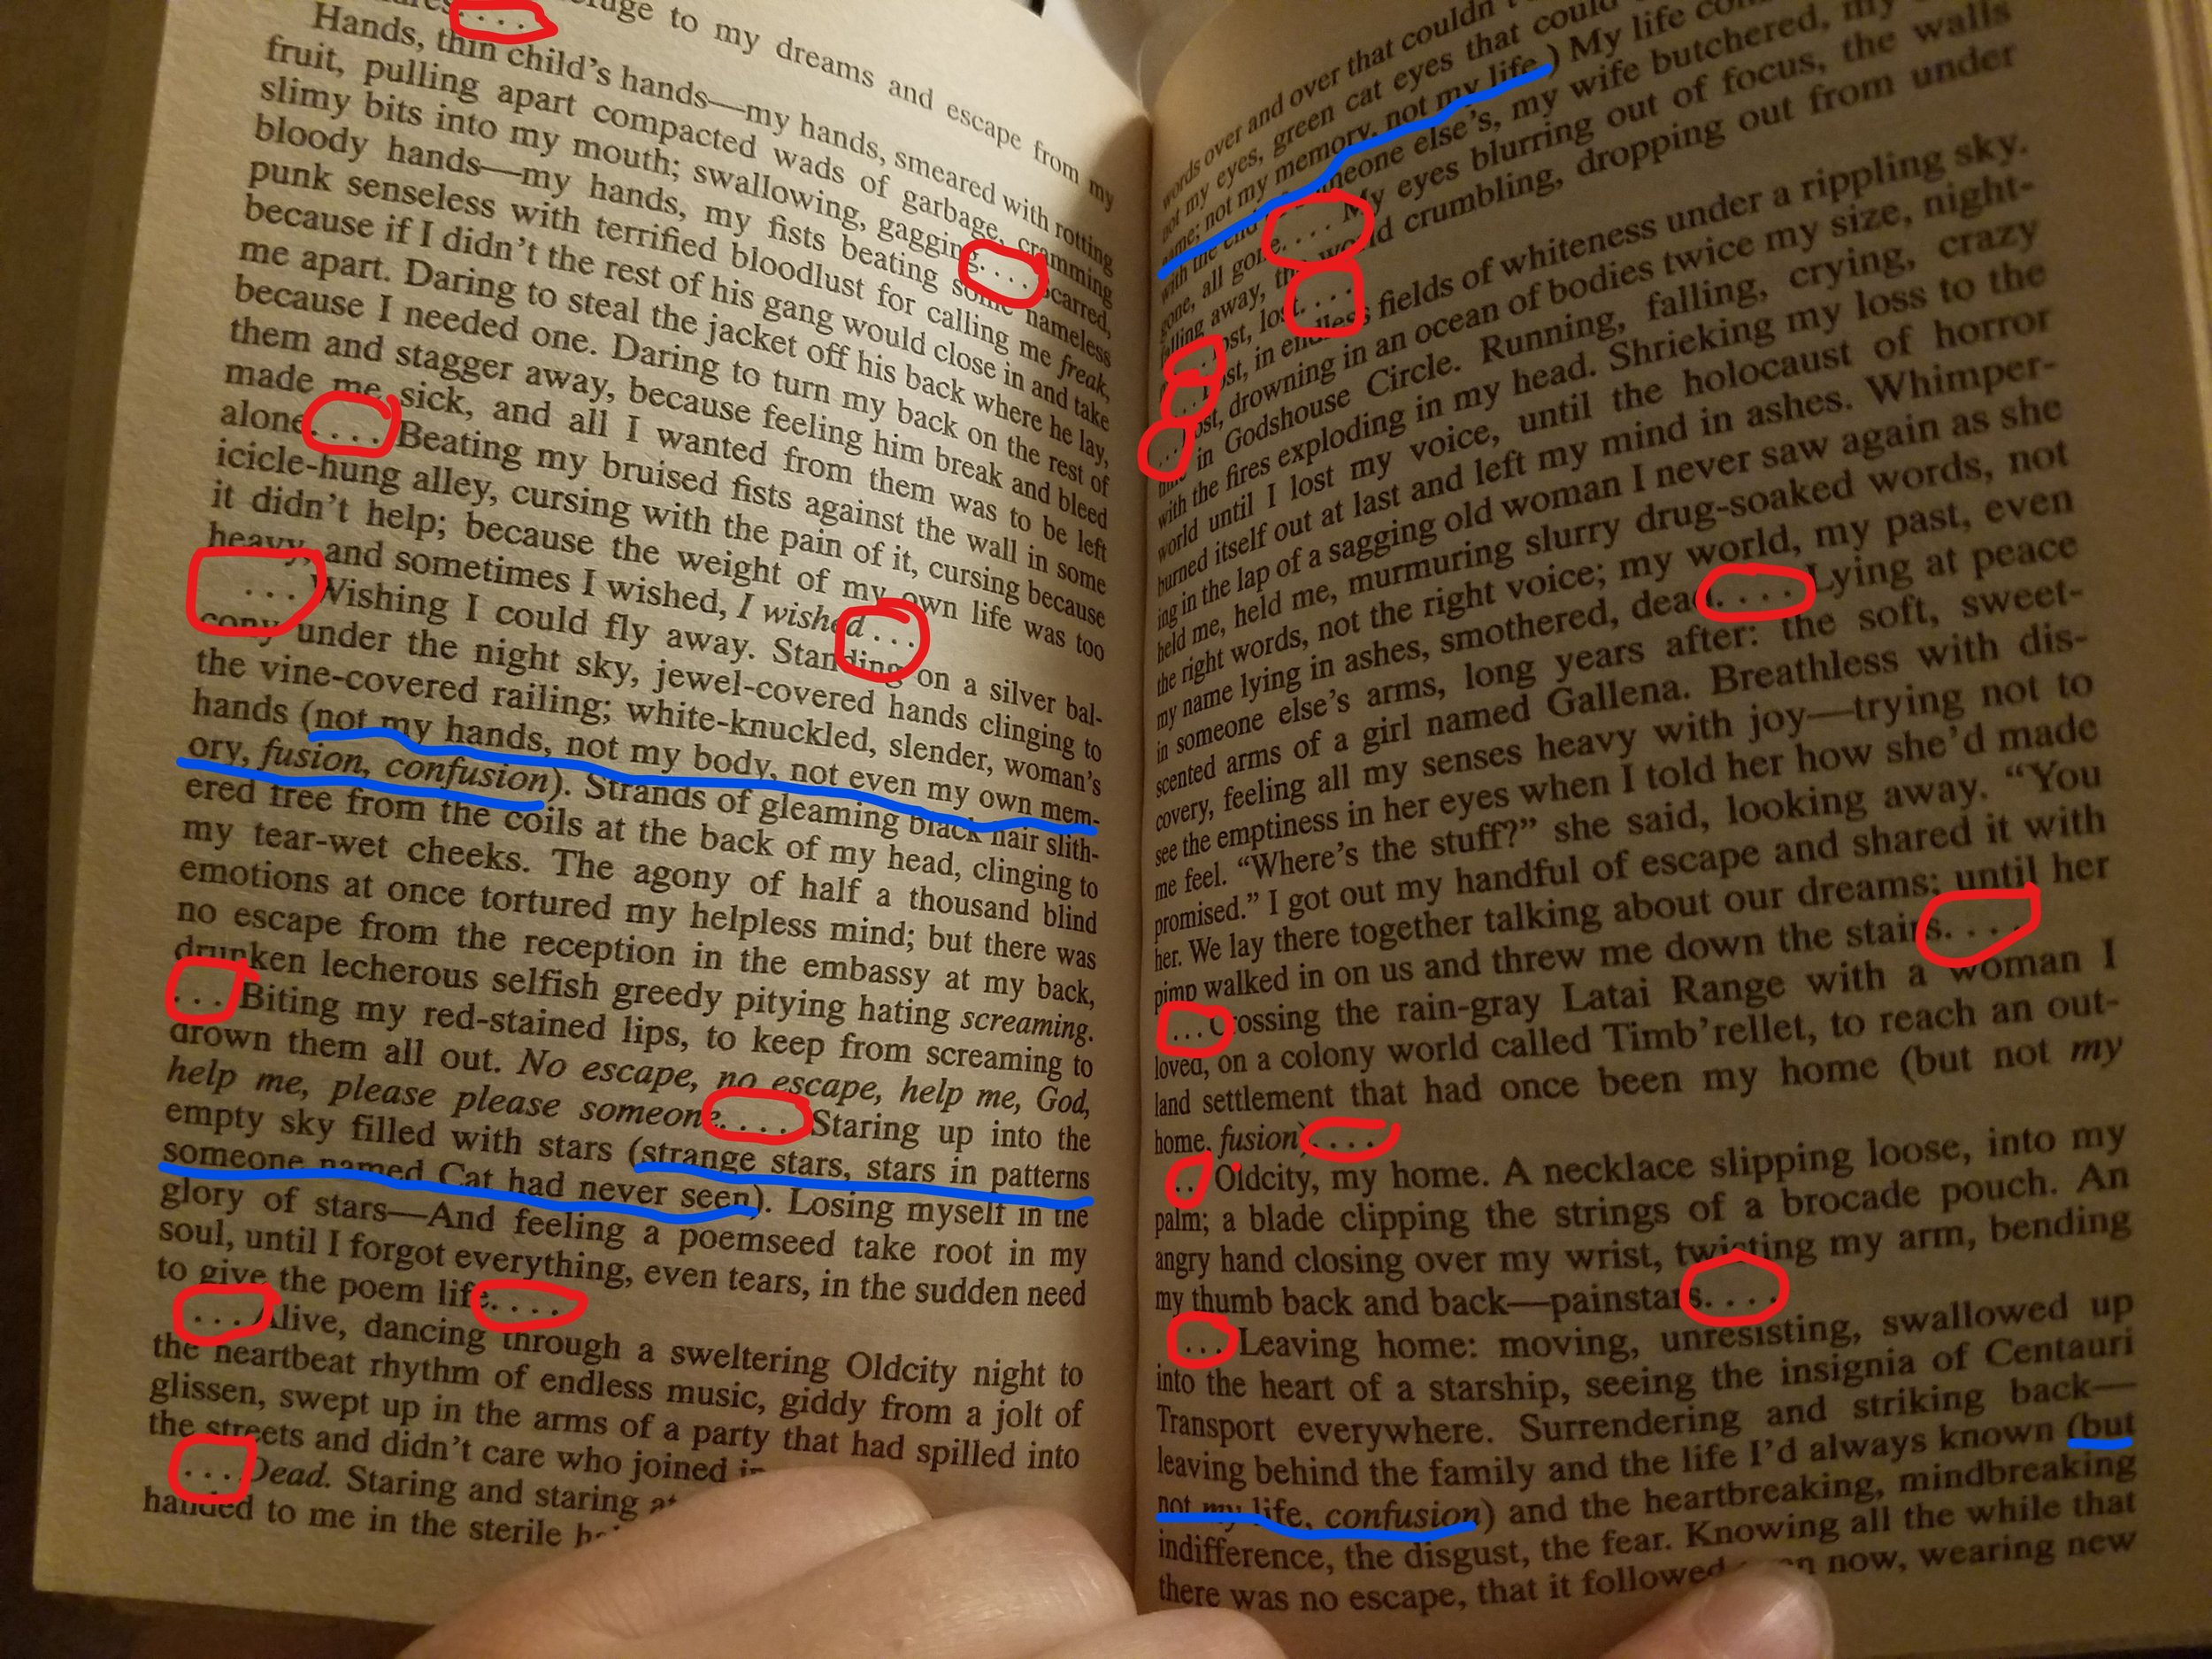 Every red circle is an ellipse, every blue underline is an aside in parentheses. At page 126 out of 266, this is what finally made me put the book down.